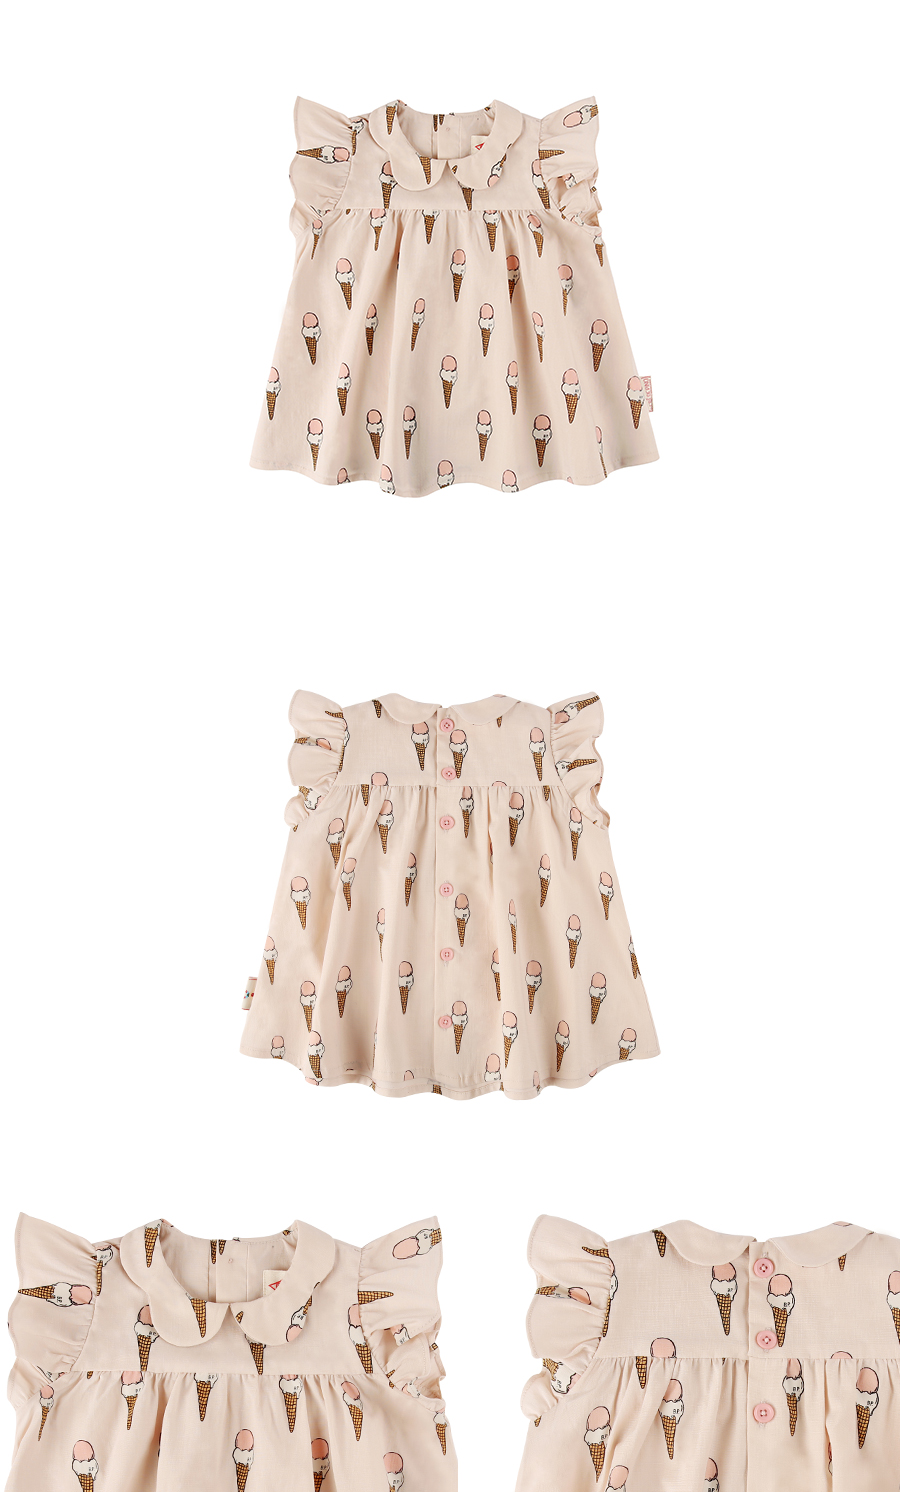 Multi ice cream cone baby girl blouse 상세 이미지